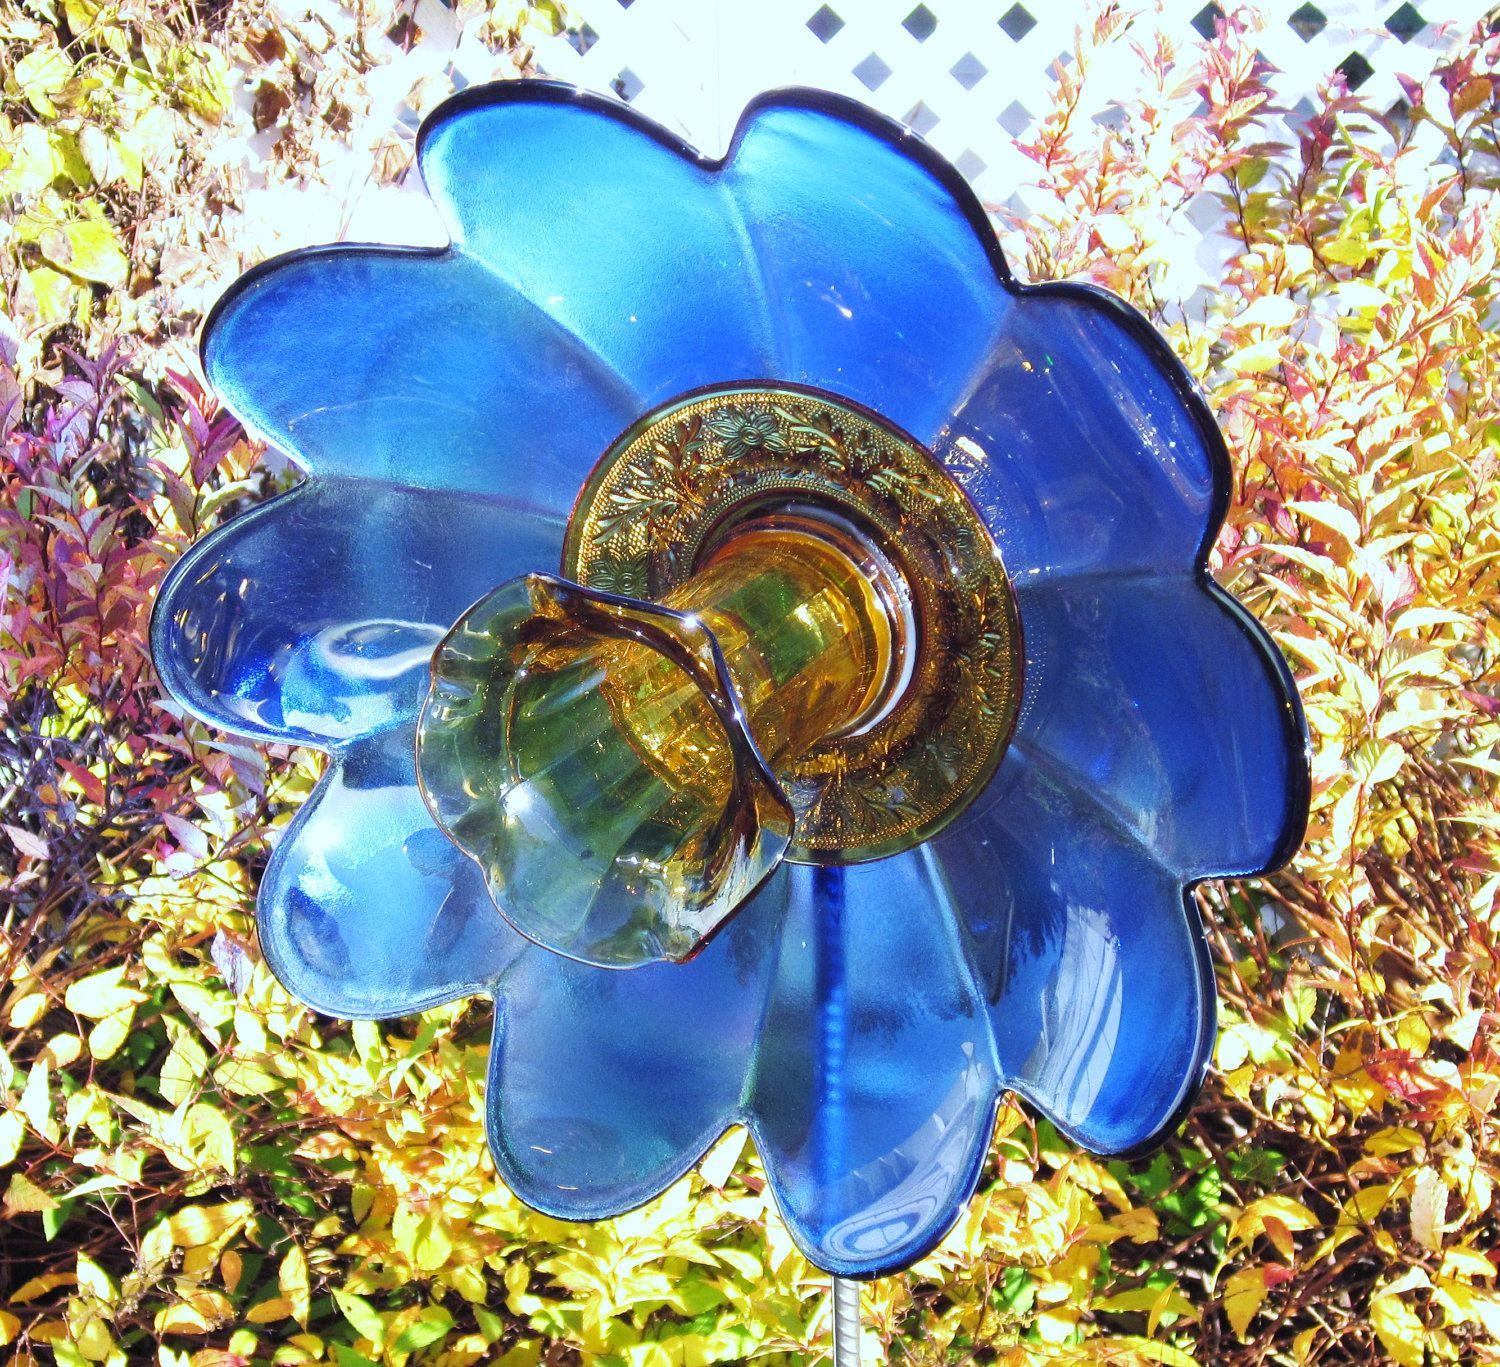 Garden art with old dishes garden art flower outdoor for Recycled glass flowers